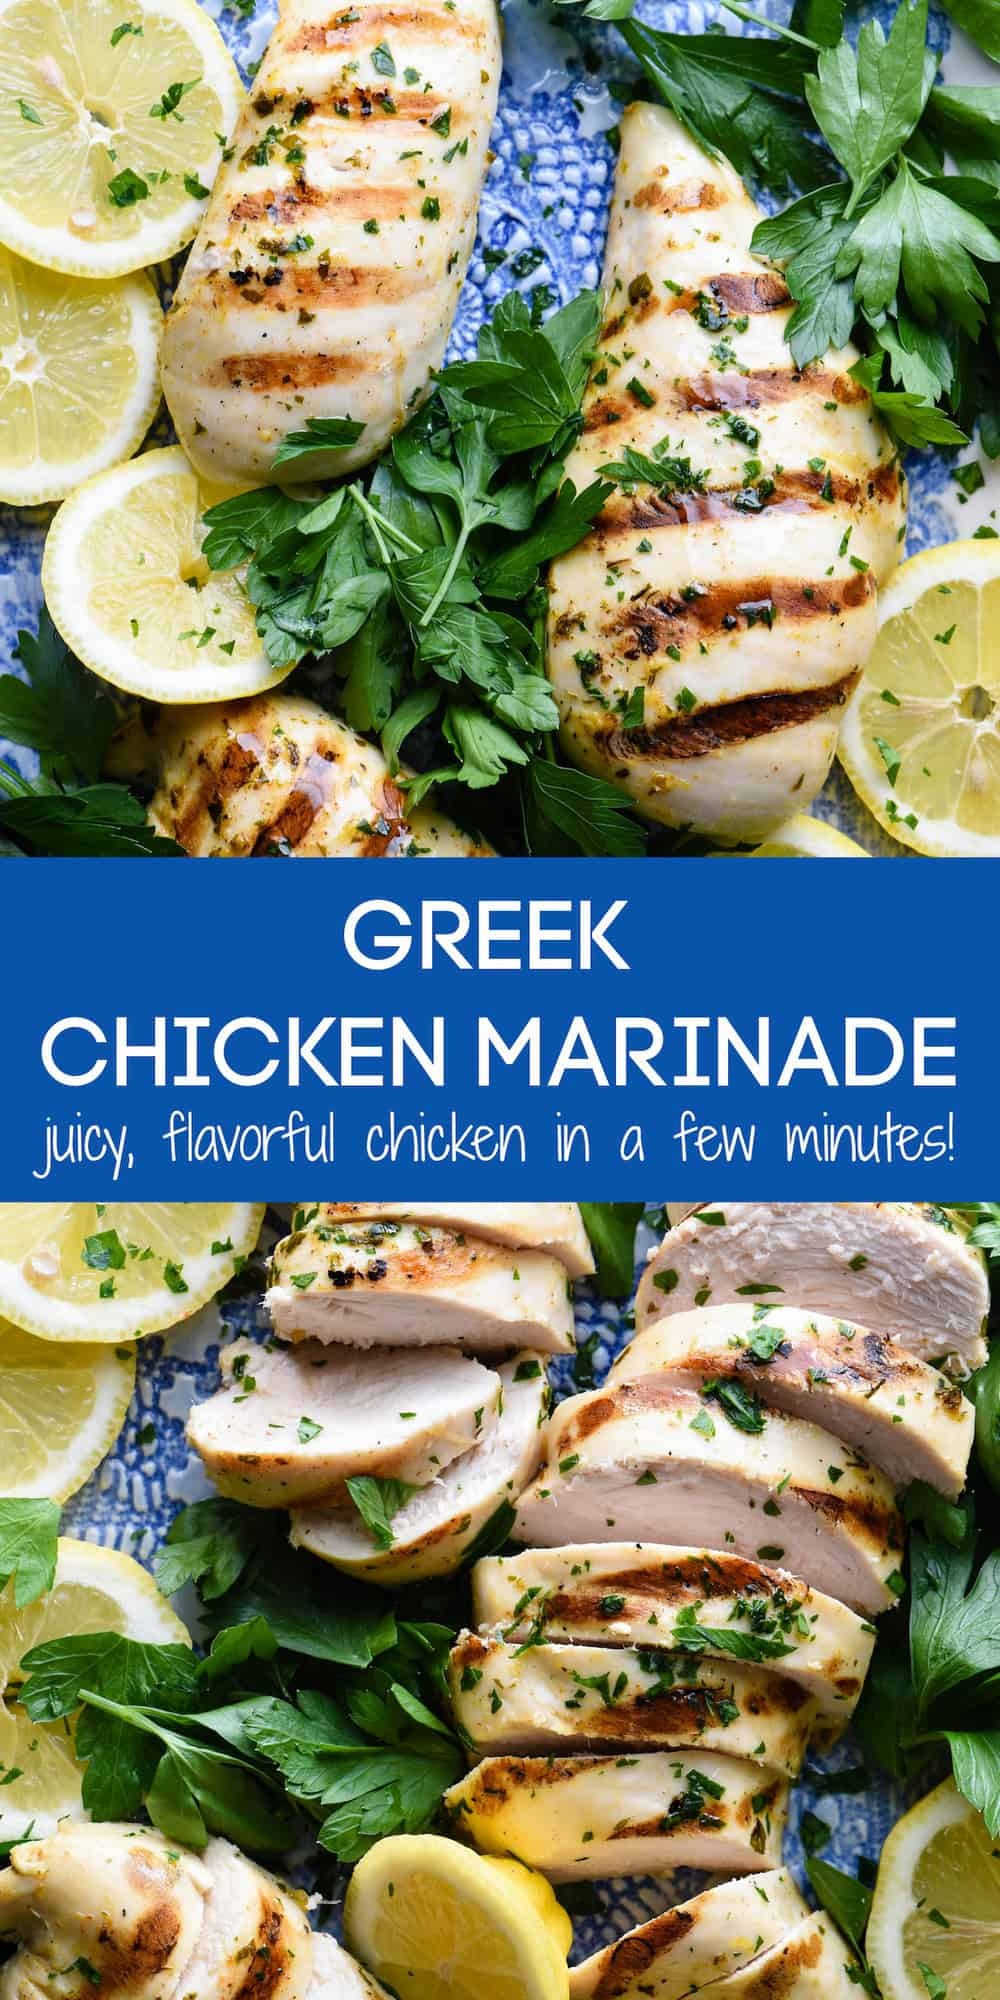 Collage of cut and uncut grilled chicken breast pieces on platter with lemons and herbs. Overlay: GREEK CHICKEN MARINADE juicy, flavorful chicken in a few minutes!